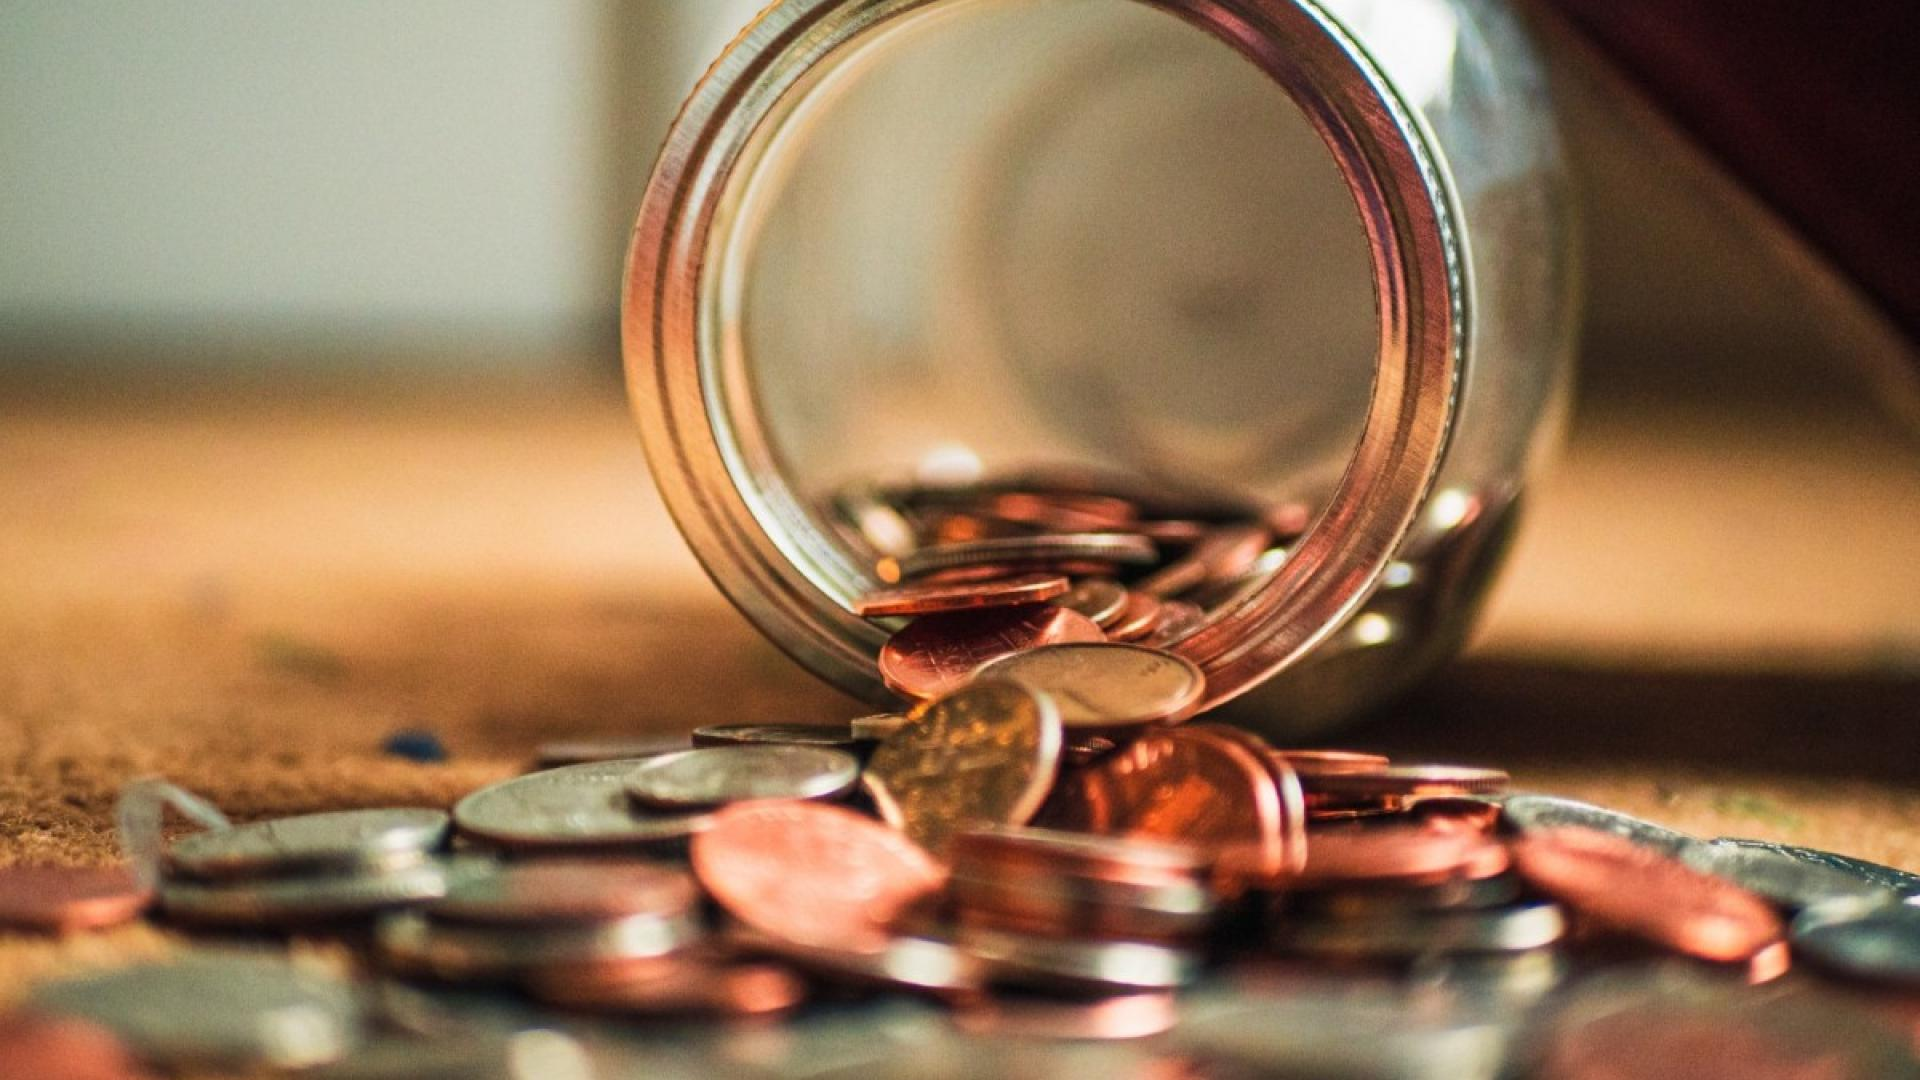 Inability to manage finances could be Alzheimer's early warning sign